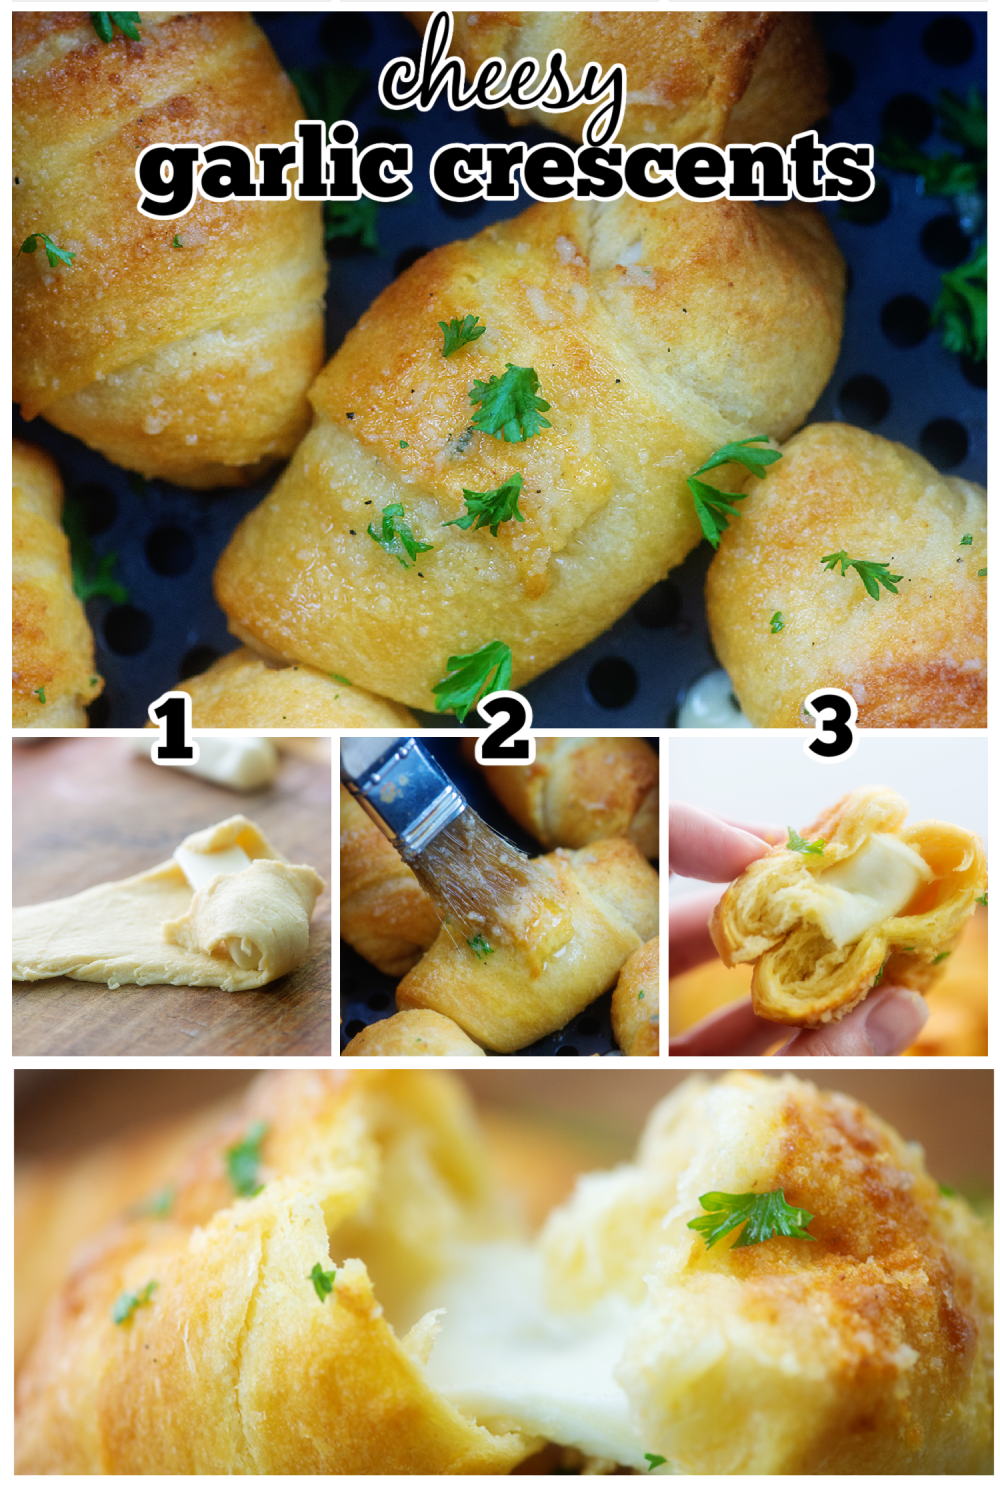 These cheese stuffed crescent rolls are so easy and cheesy! Topped with garlic butter and cooked in the air fryer!